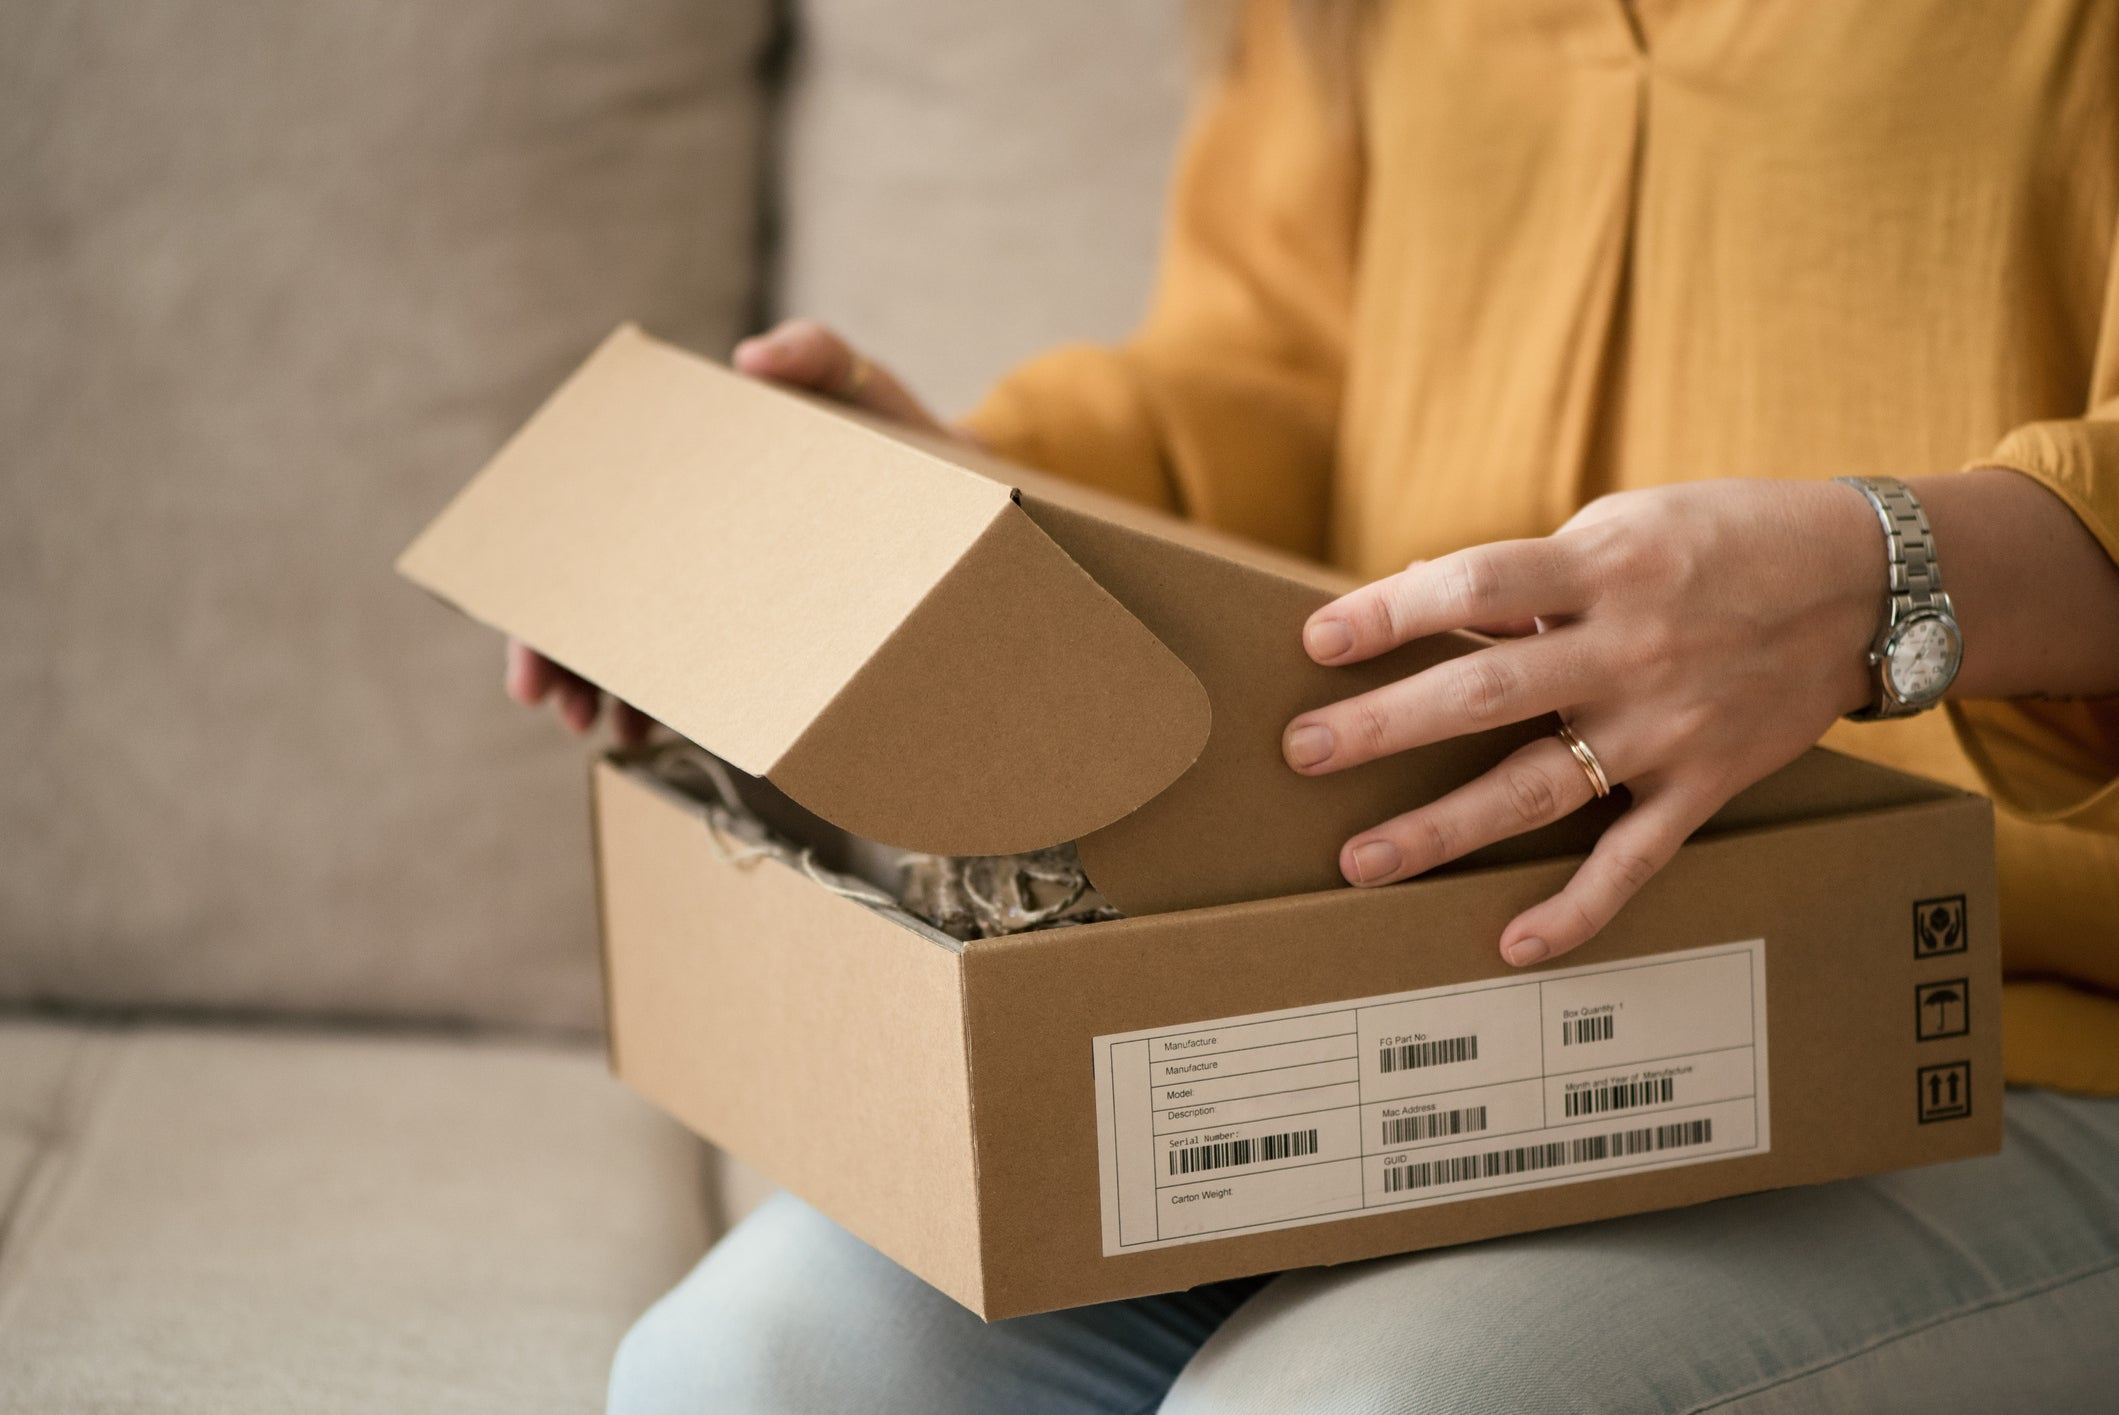 Tips & Tools for Preventing Package Theft